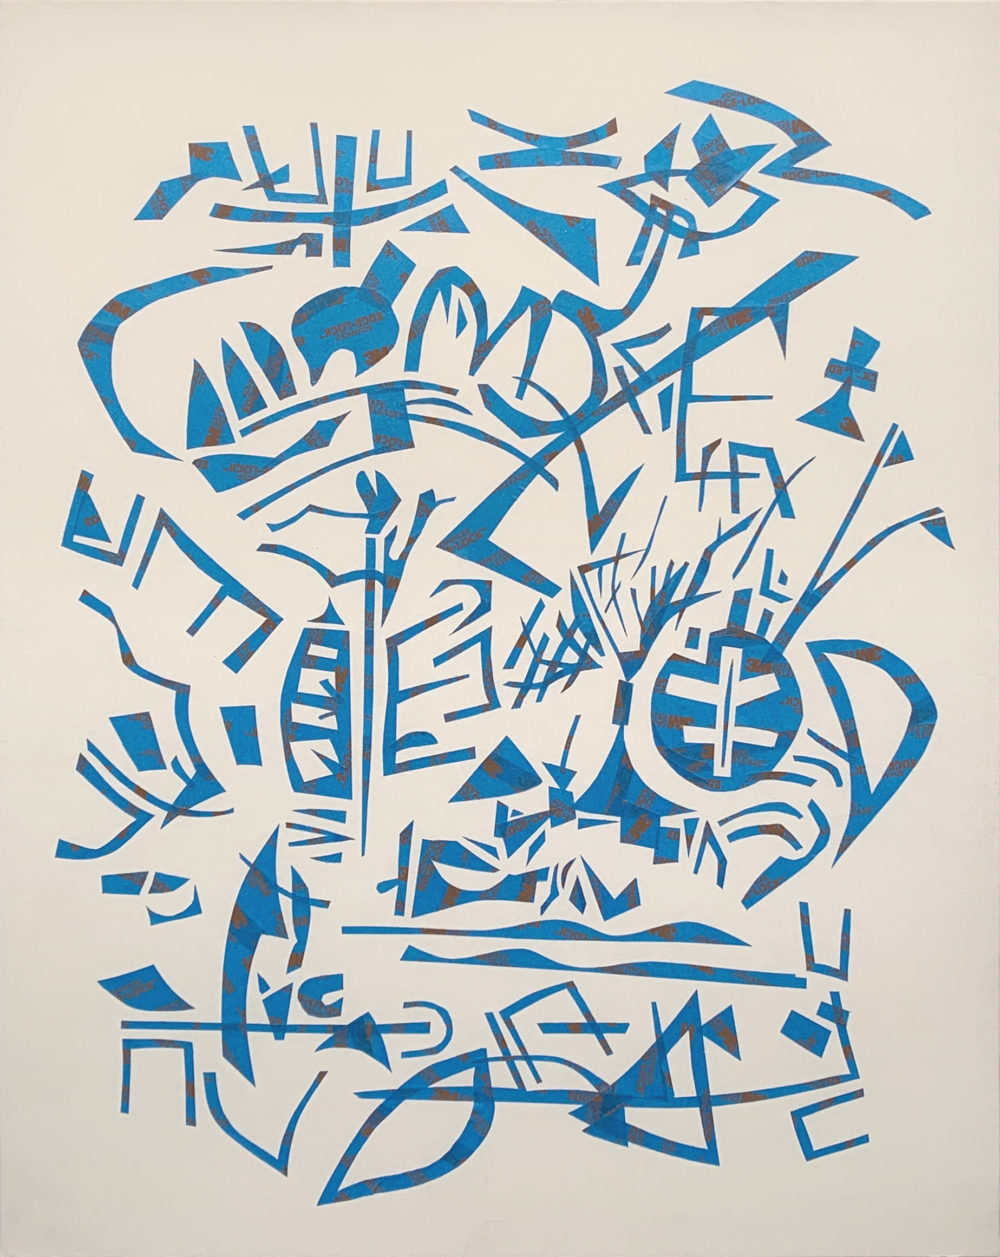 abstract blue tape drawing by james leflore | Felder Gallery